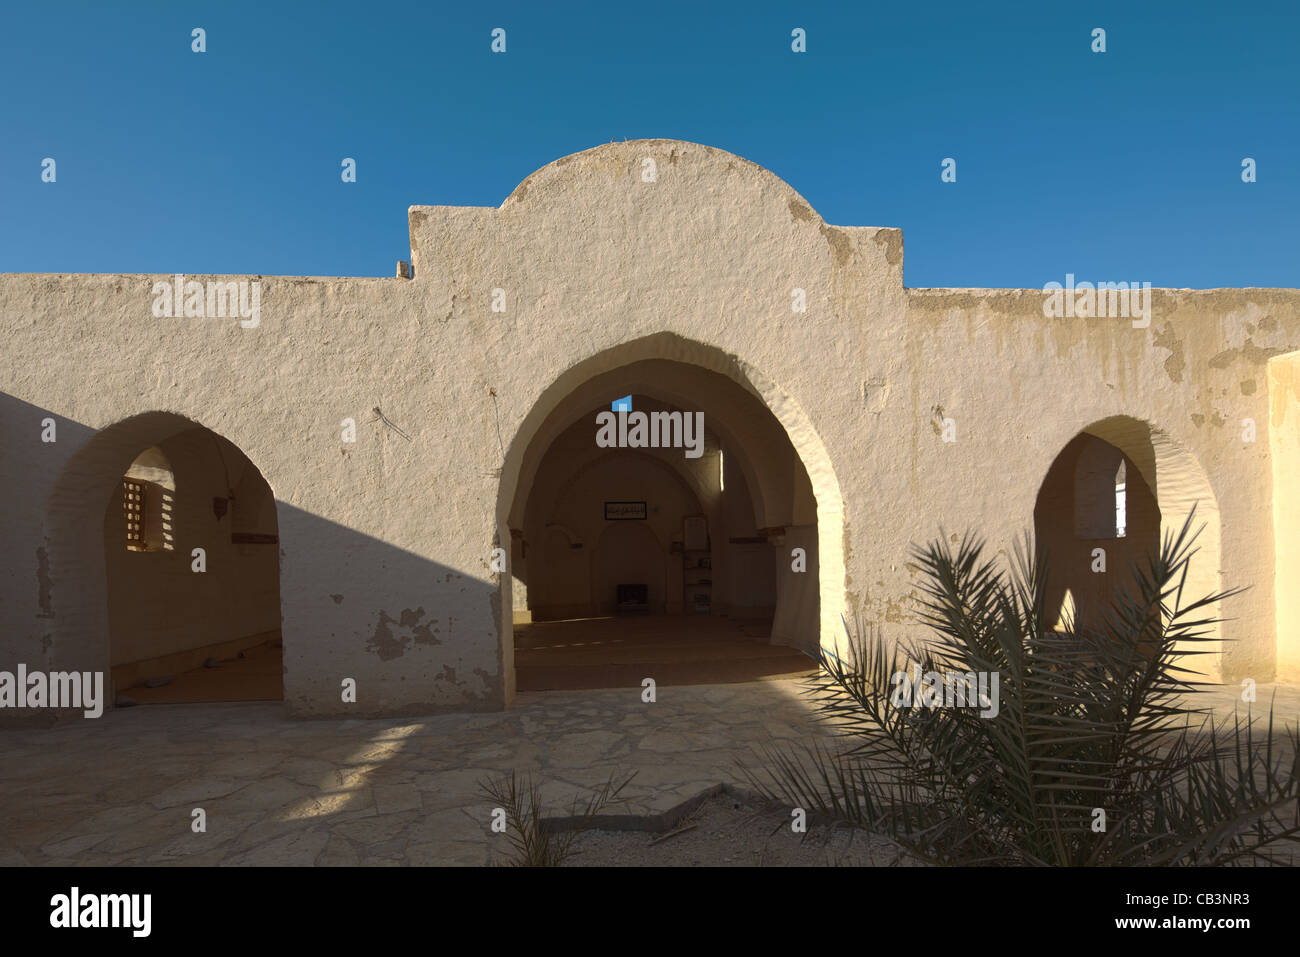 courtyard mosque at Basata eco-lodge, Gulf of Aqaba, South Sinai, Egypt - Stock Image